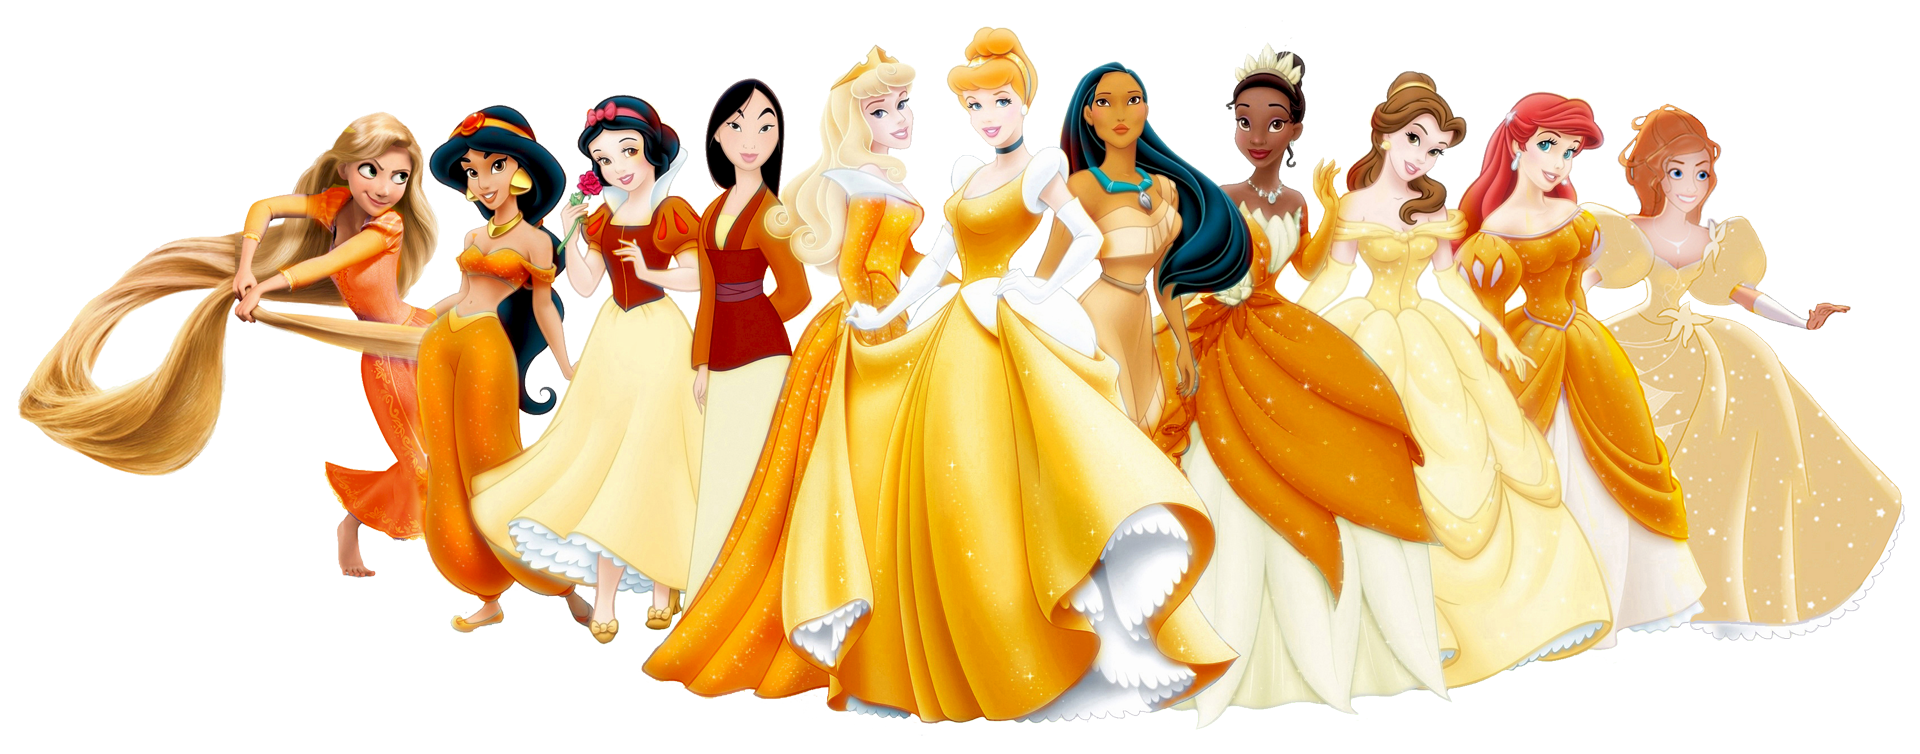 Clipart halloween disney clip 28+ Collection of Princess Halloween Clipart | High quality, free ... clip